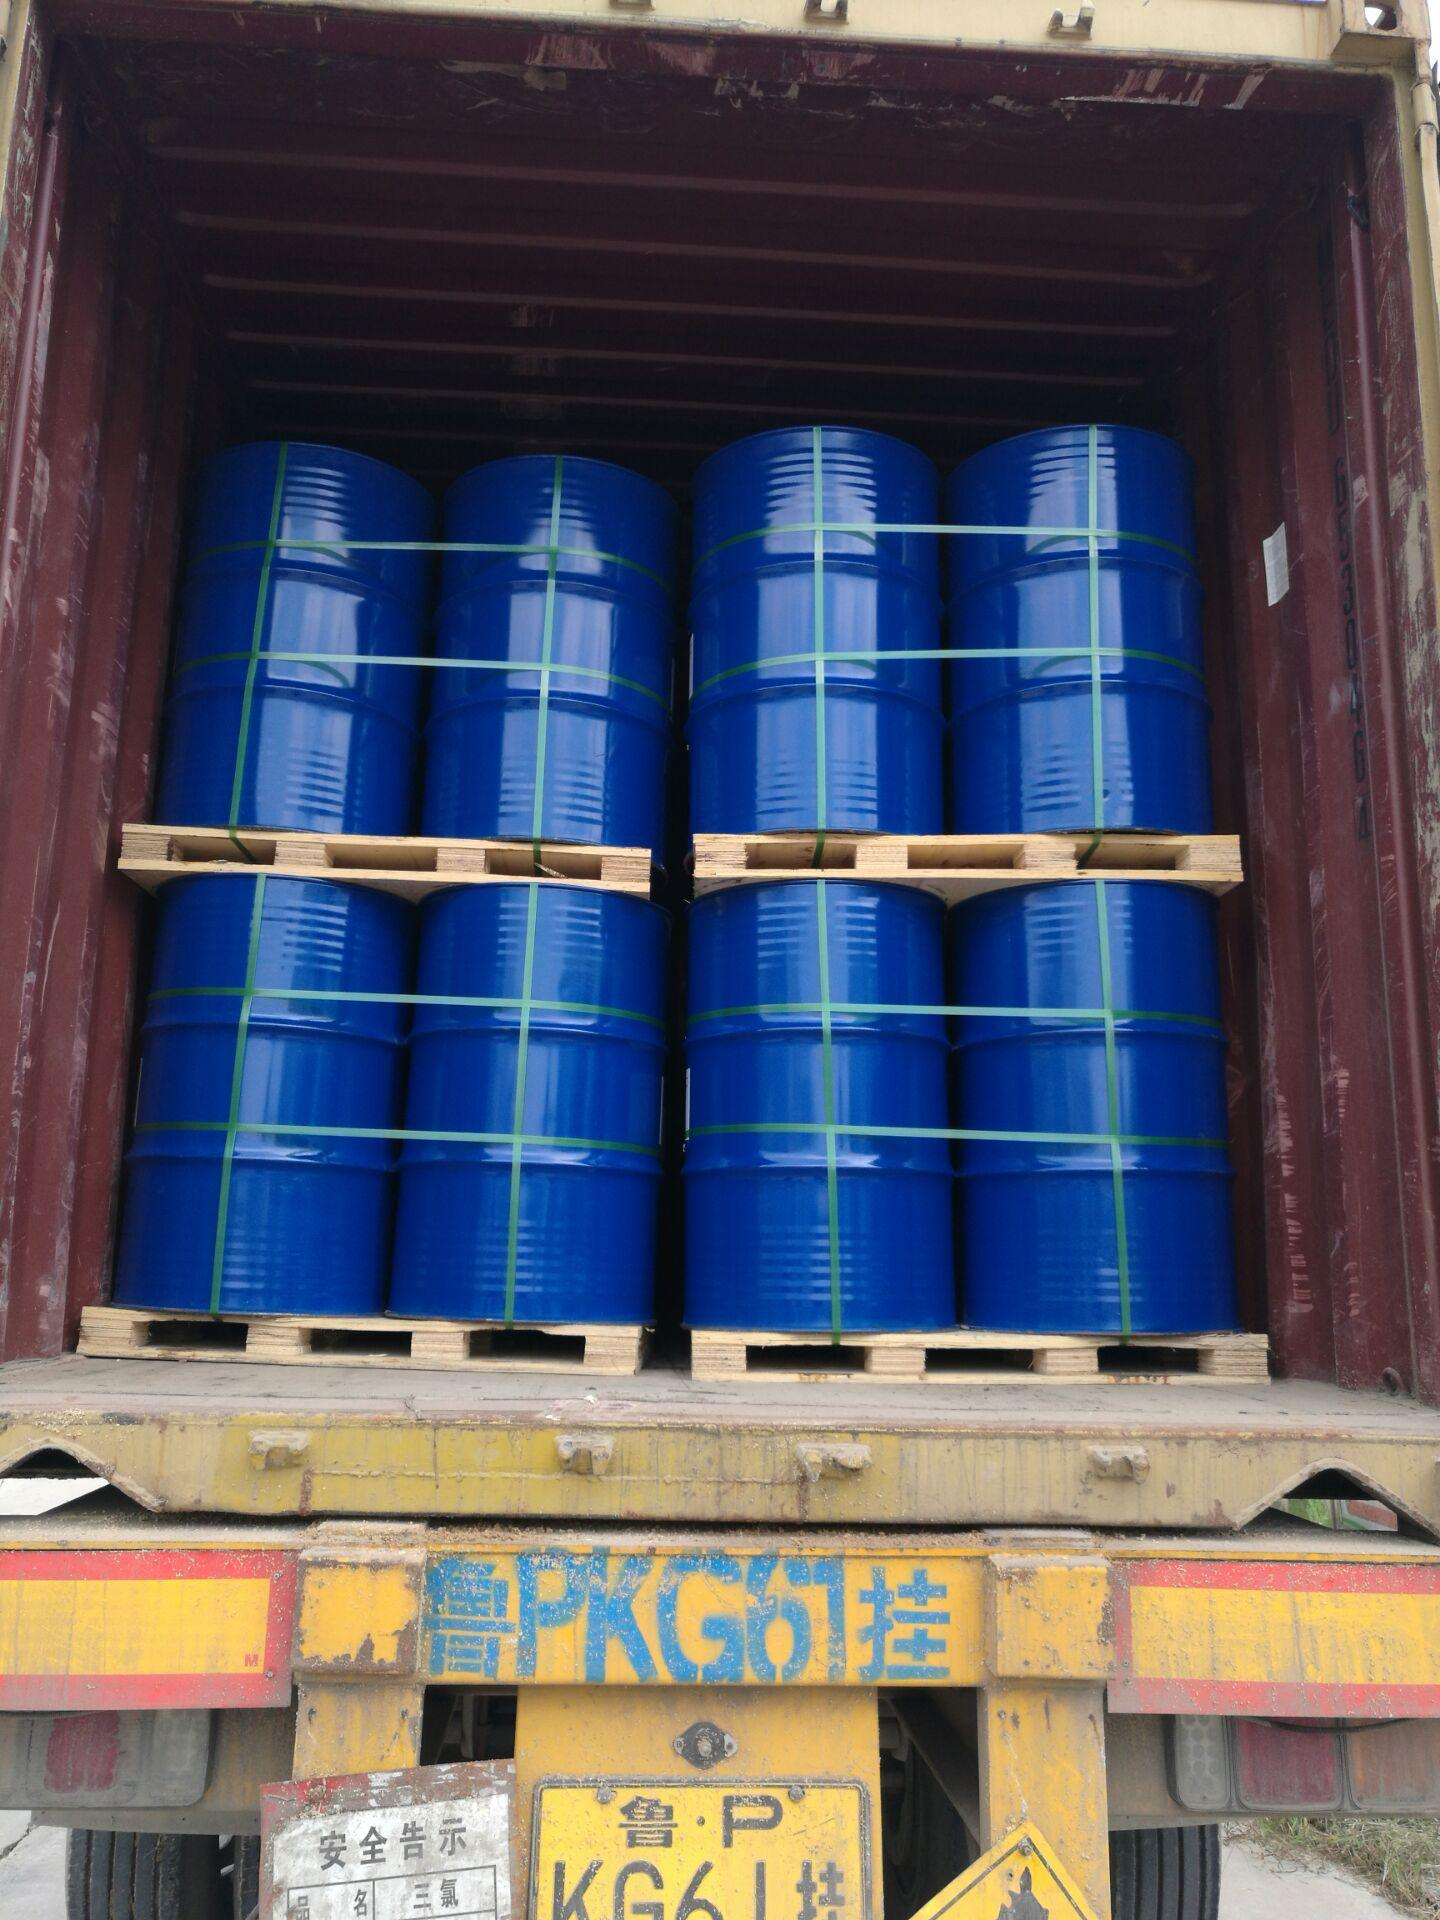 Acetyl Tributyl Citrate (ATBC)